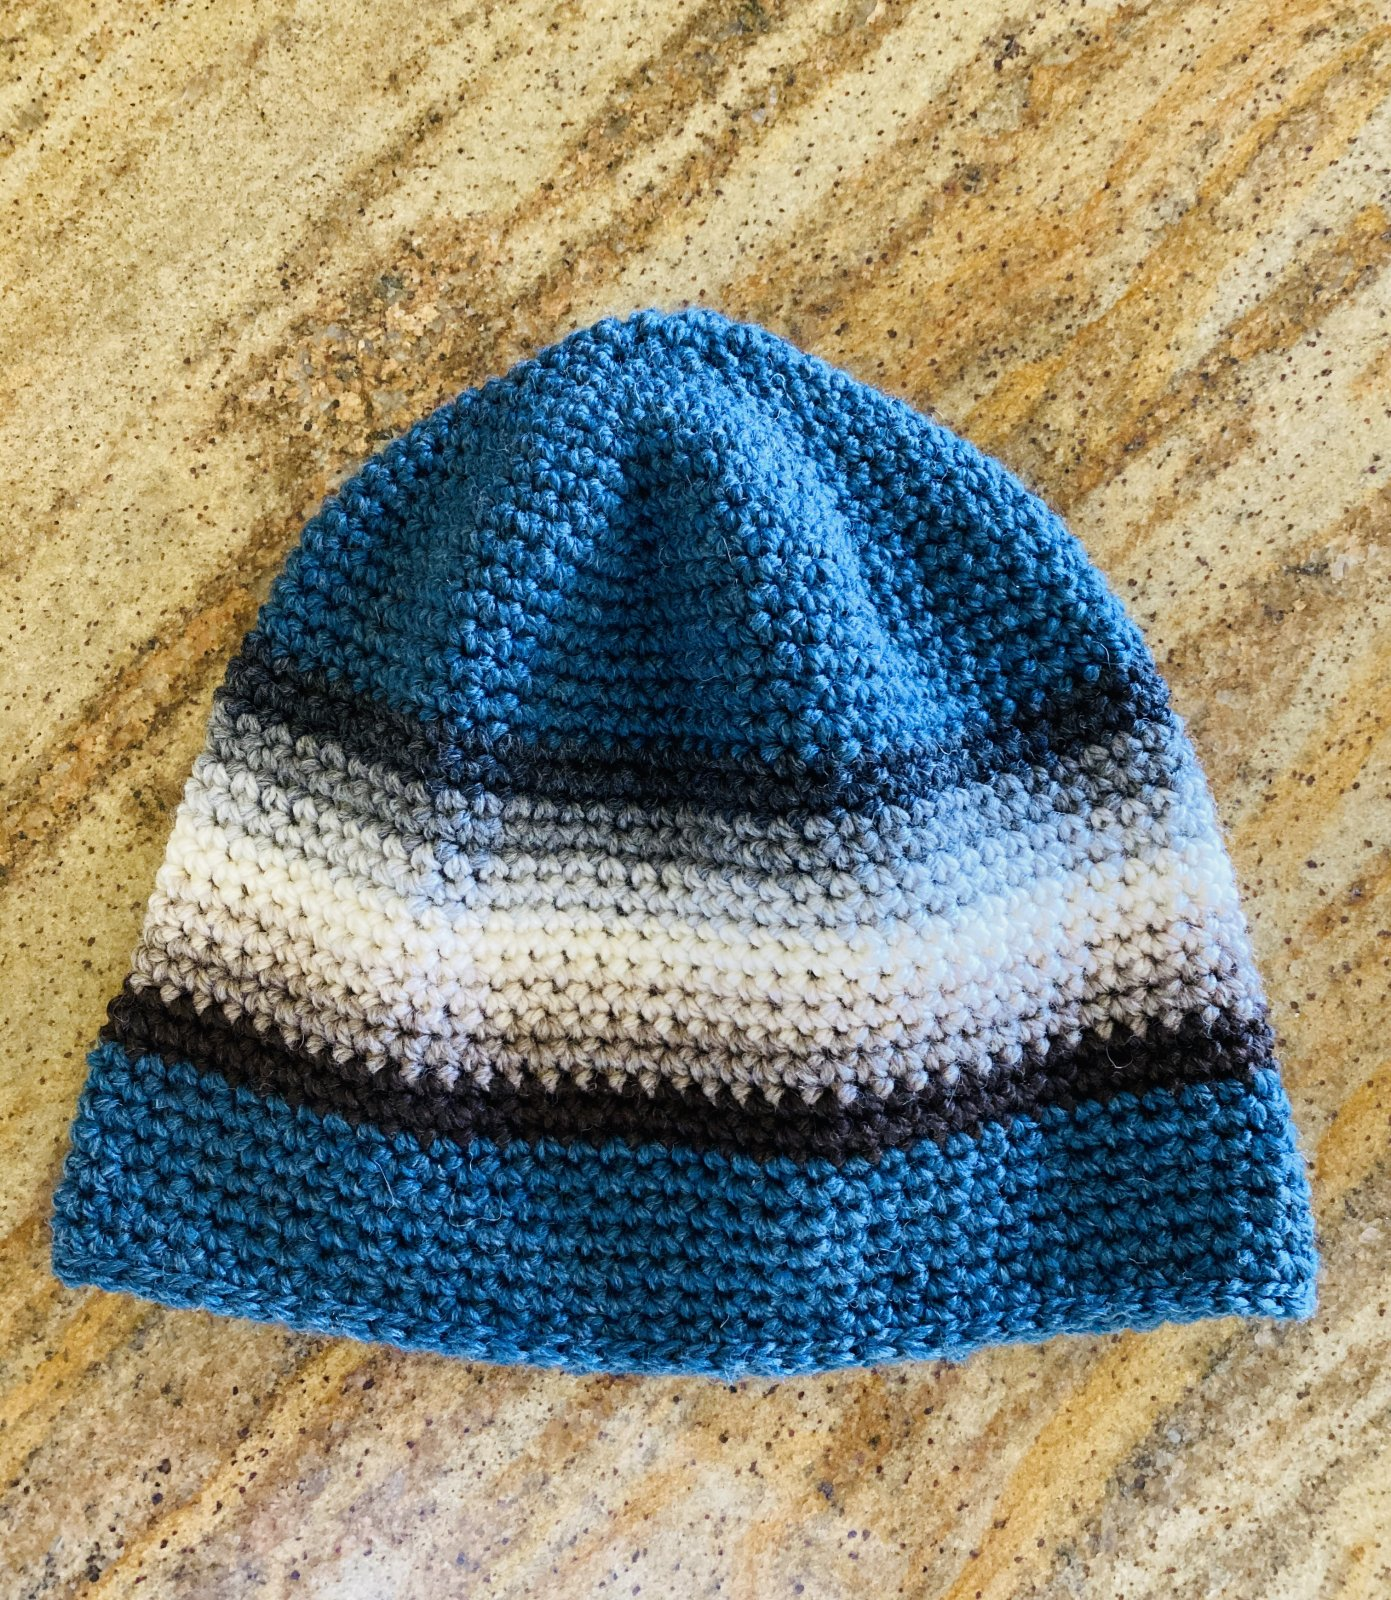 Yarn Crawl Kit! - Breckenridge Hat (crochet)